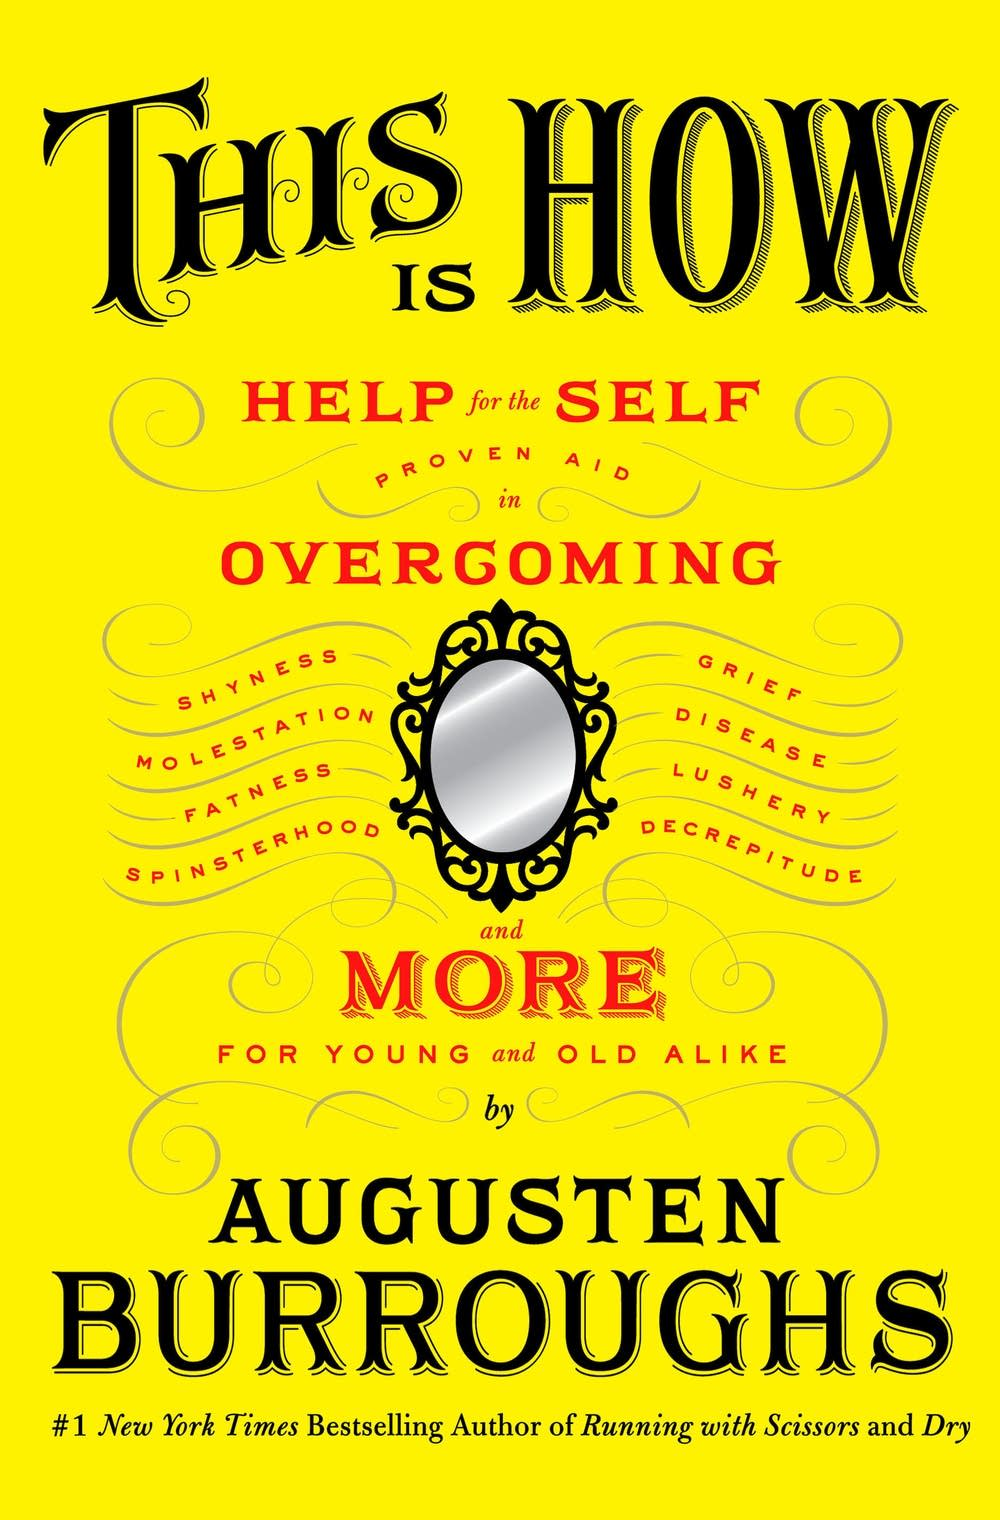 'This is How' by Augusten Burroughs